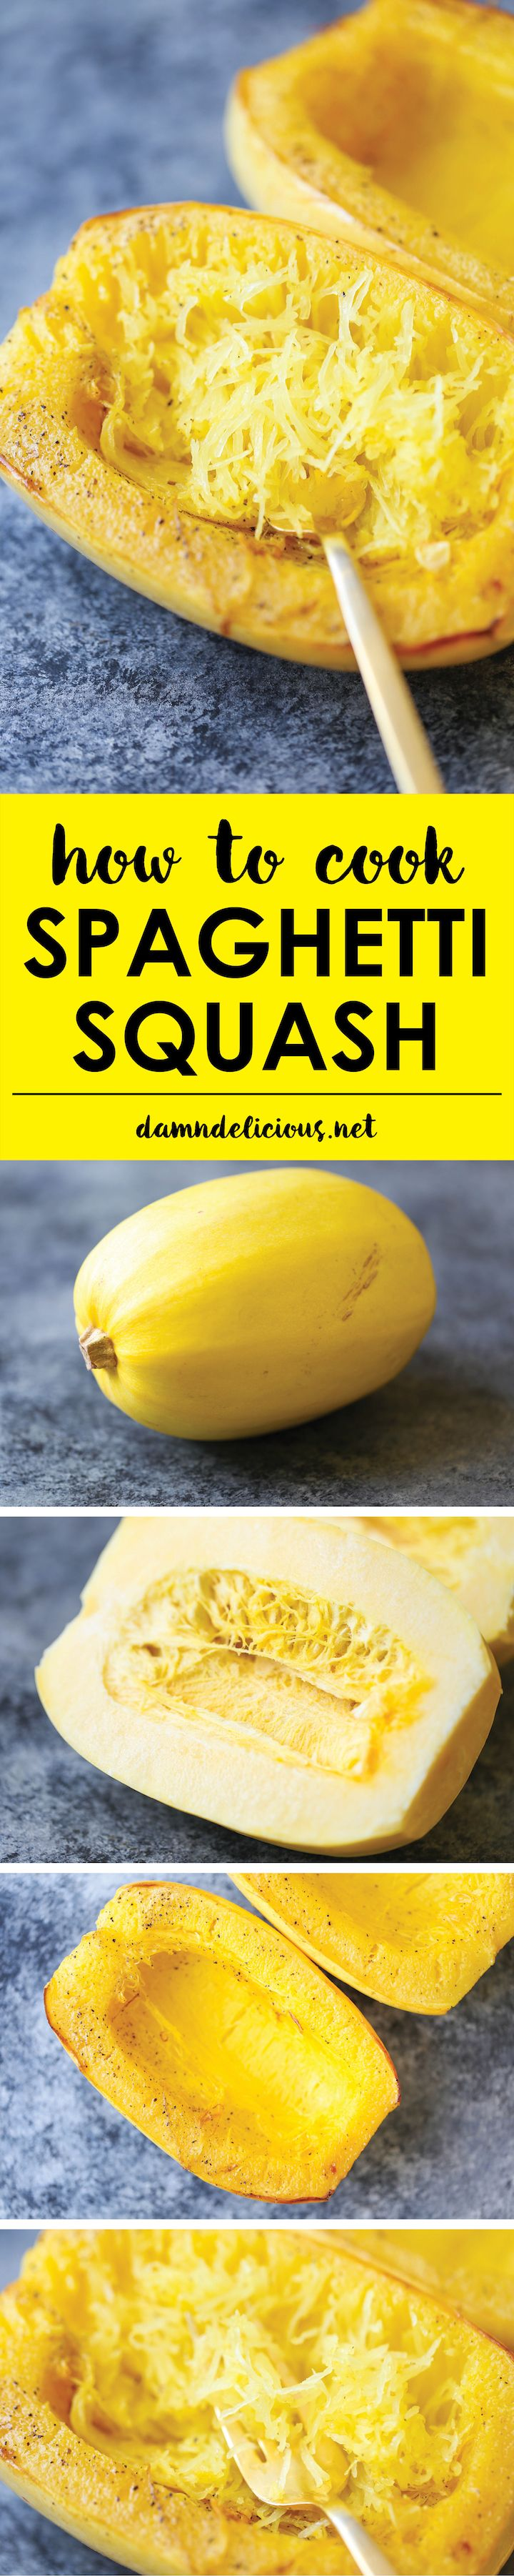 The simplest and EASIEST way to cook spaghetti squash. And it's such a healthy substitute to pasta – low in calories and fat!